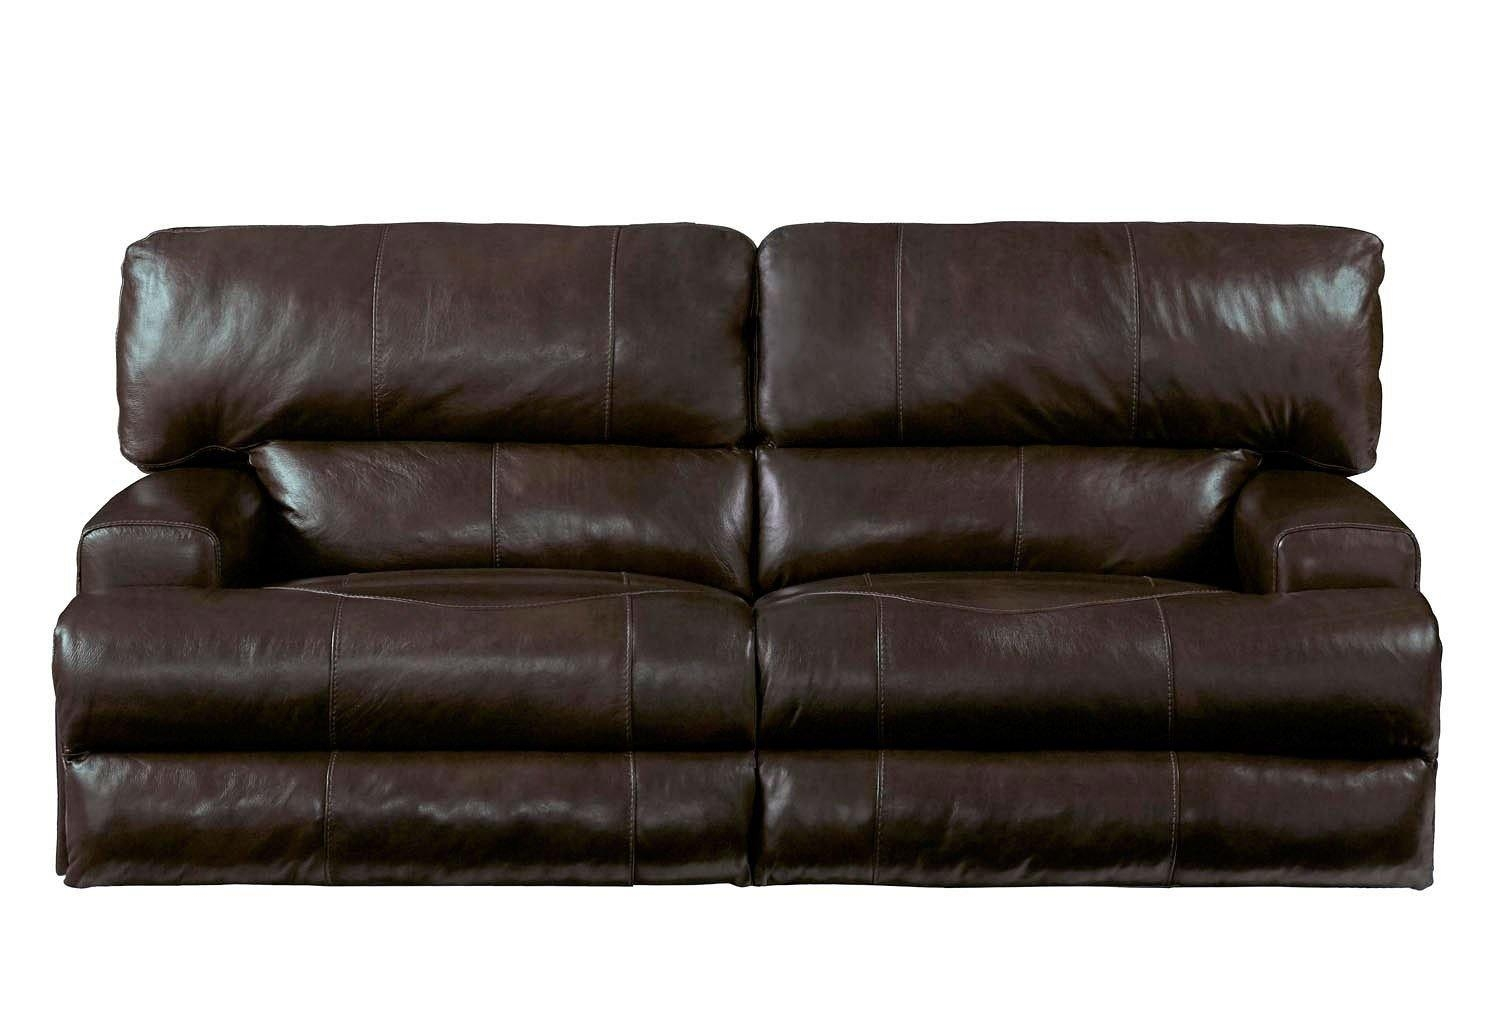 Wembley Lay Flat Reclining Living Room Set (Chocolate) Catnapper Throughout Catnapper Reclining Sofas (Image 20 of 20)